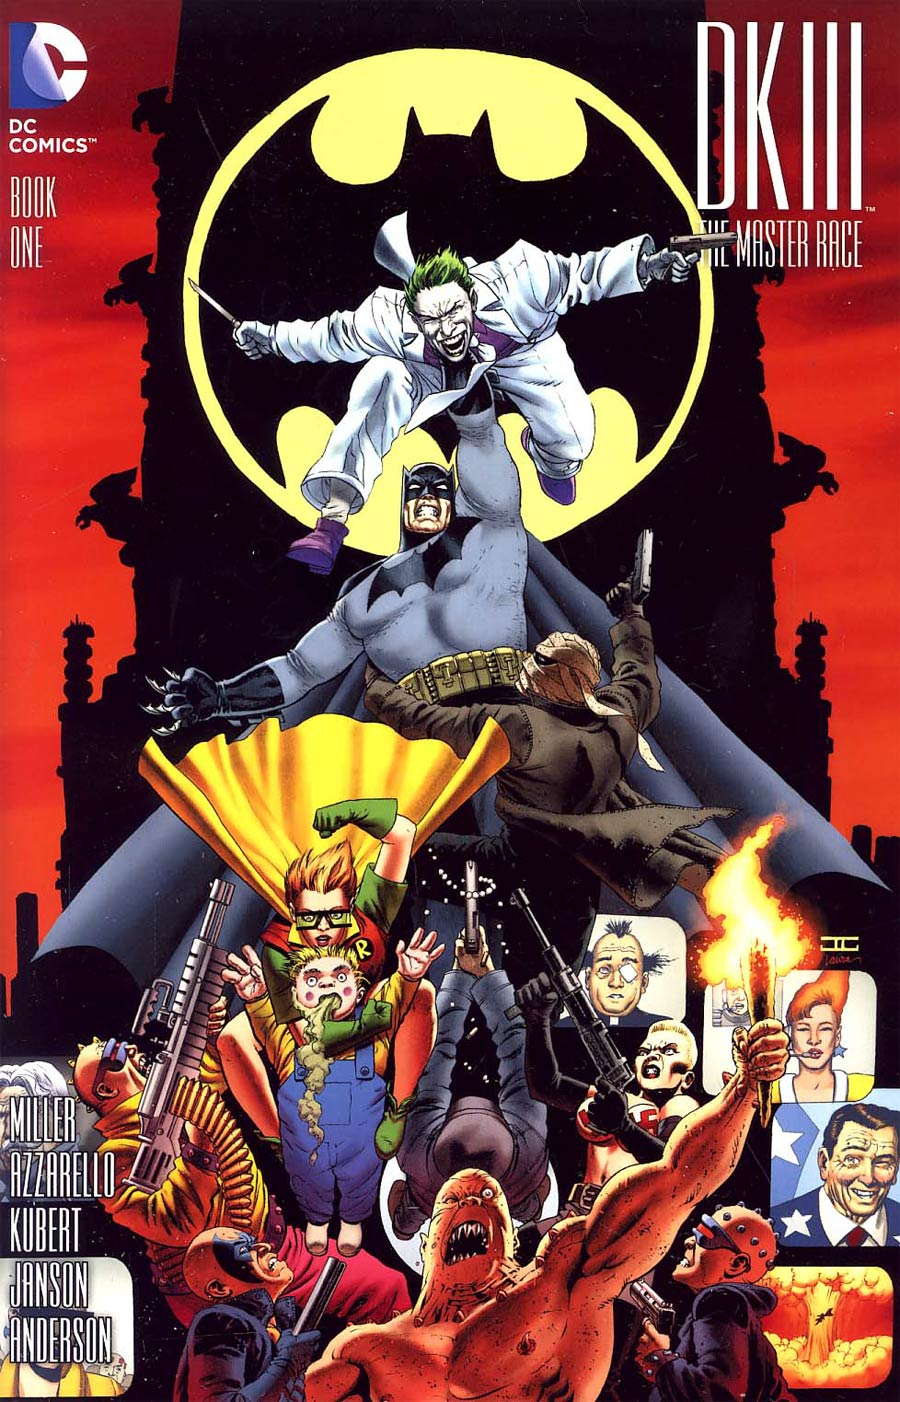 Dark Knight III The Master Race #1 Cover Z-Z-B Lone Star Comics Exclusive Variant Cover